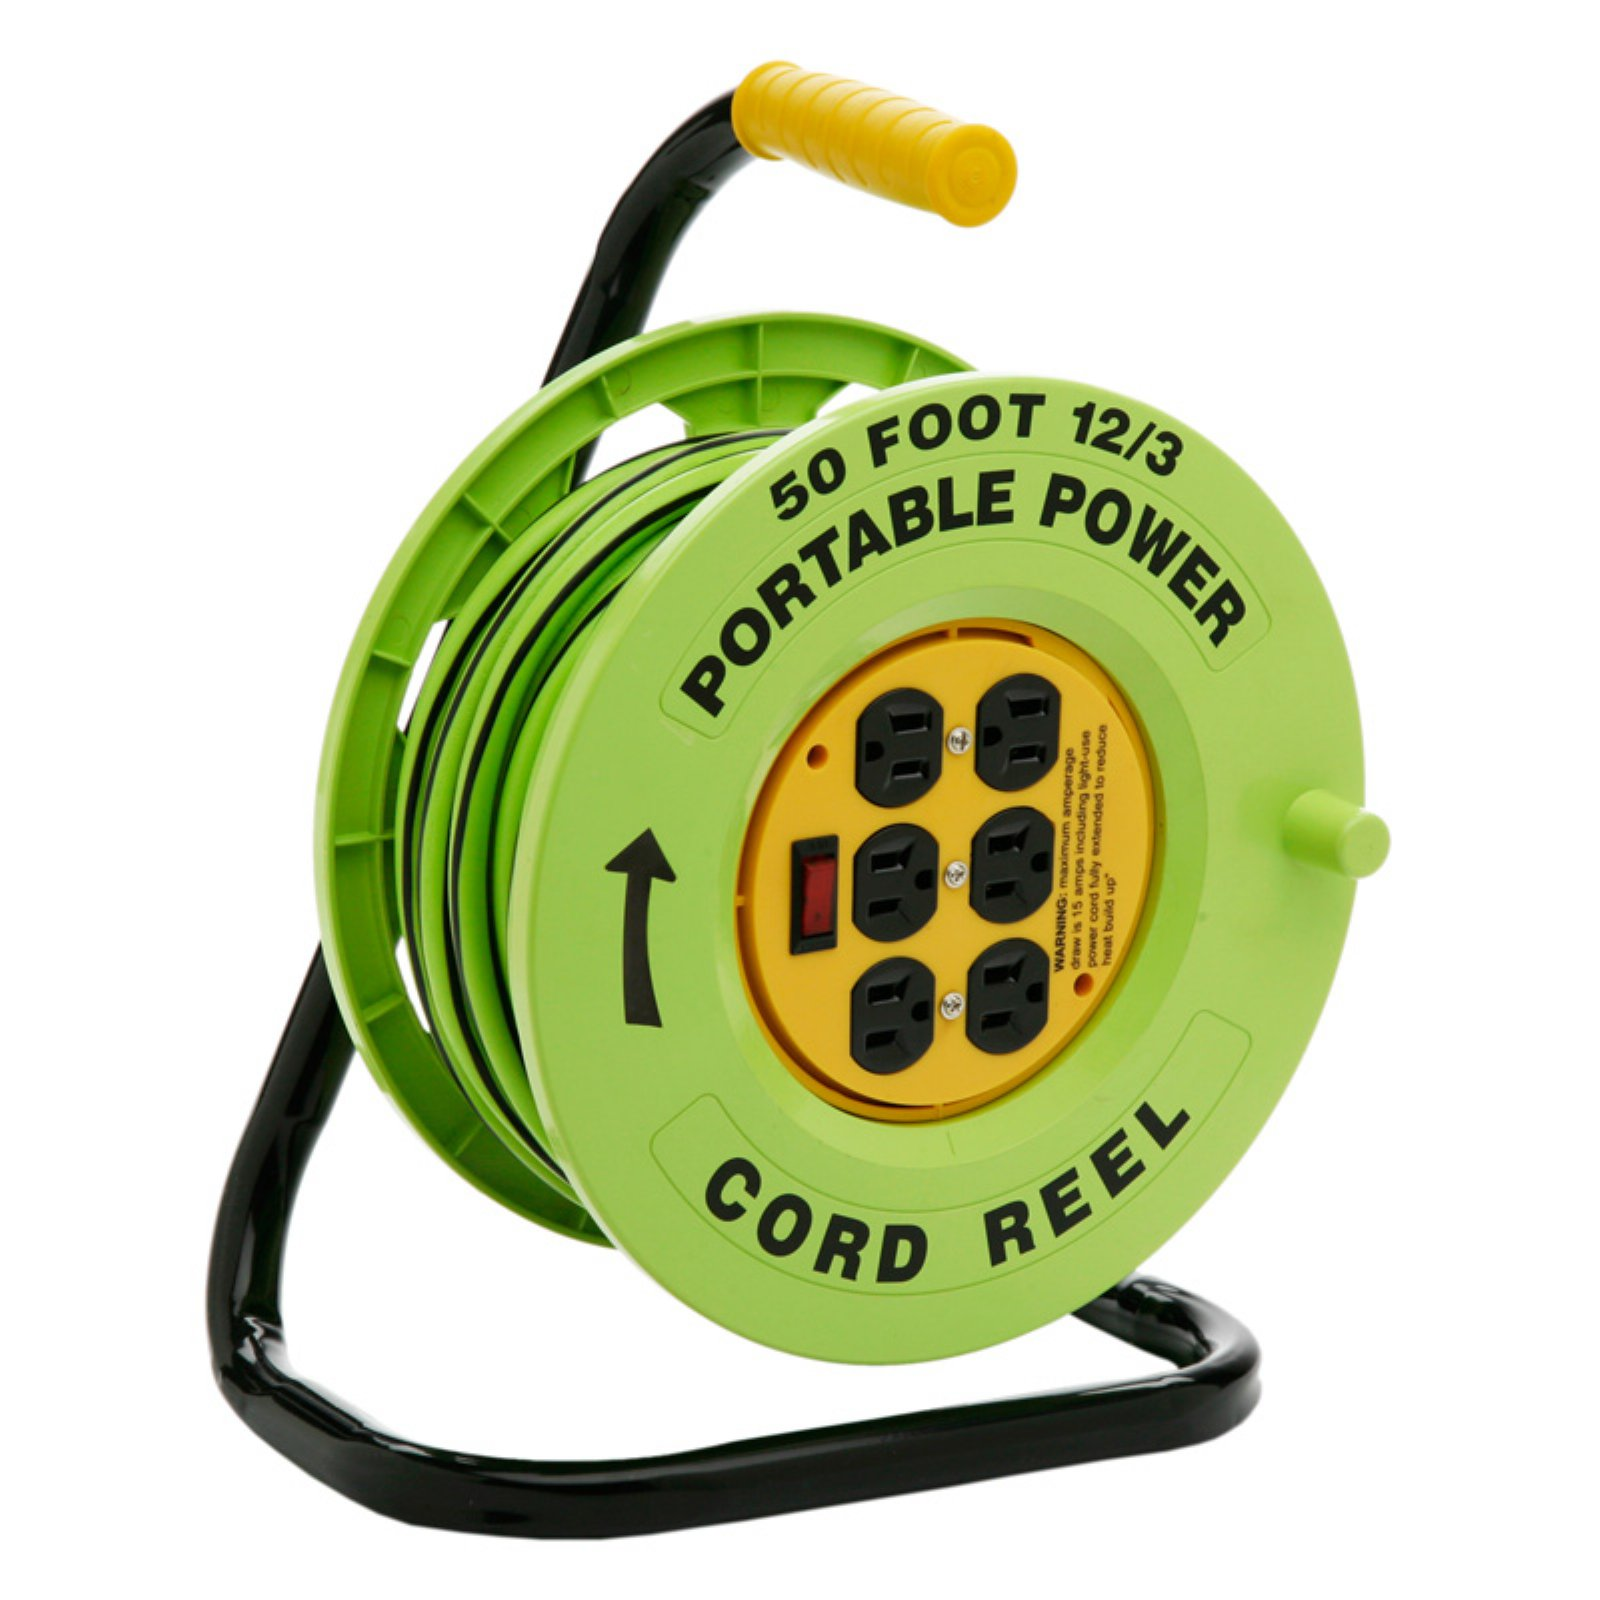 Designers Edge Power Stations 12/3-Gauge Cord Reel with 6 Outlets, 50-Foot